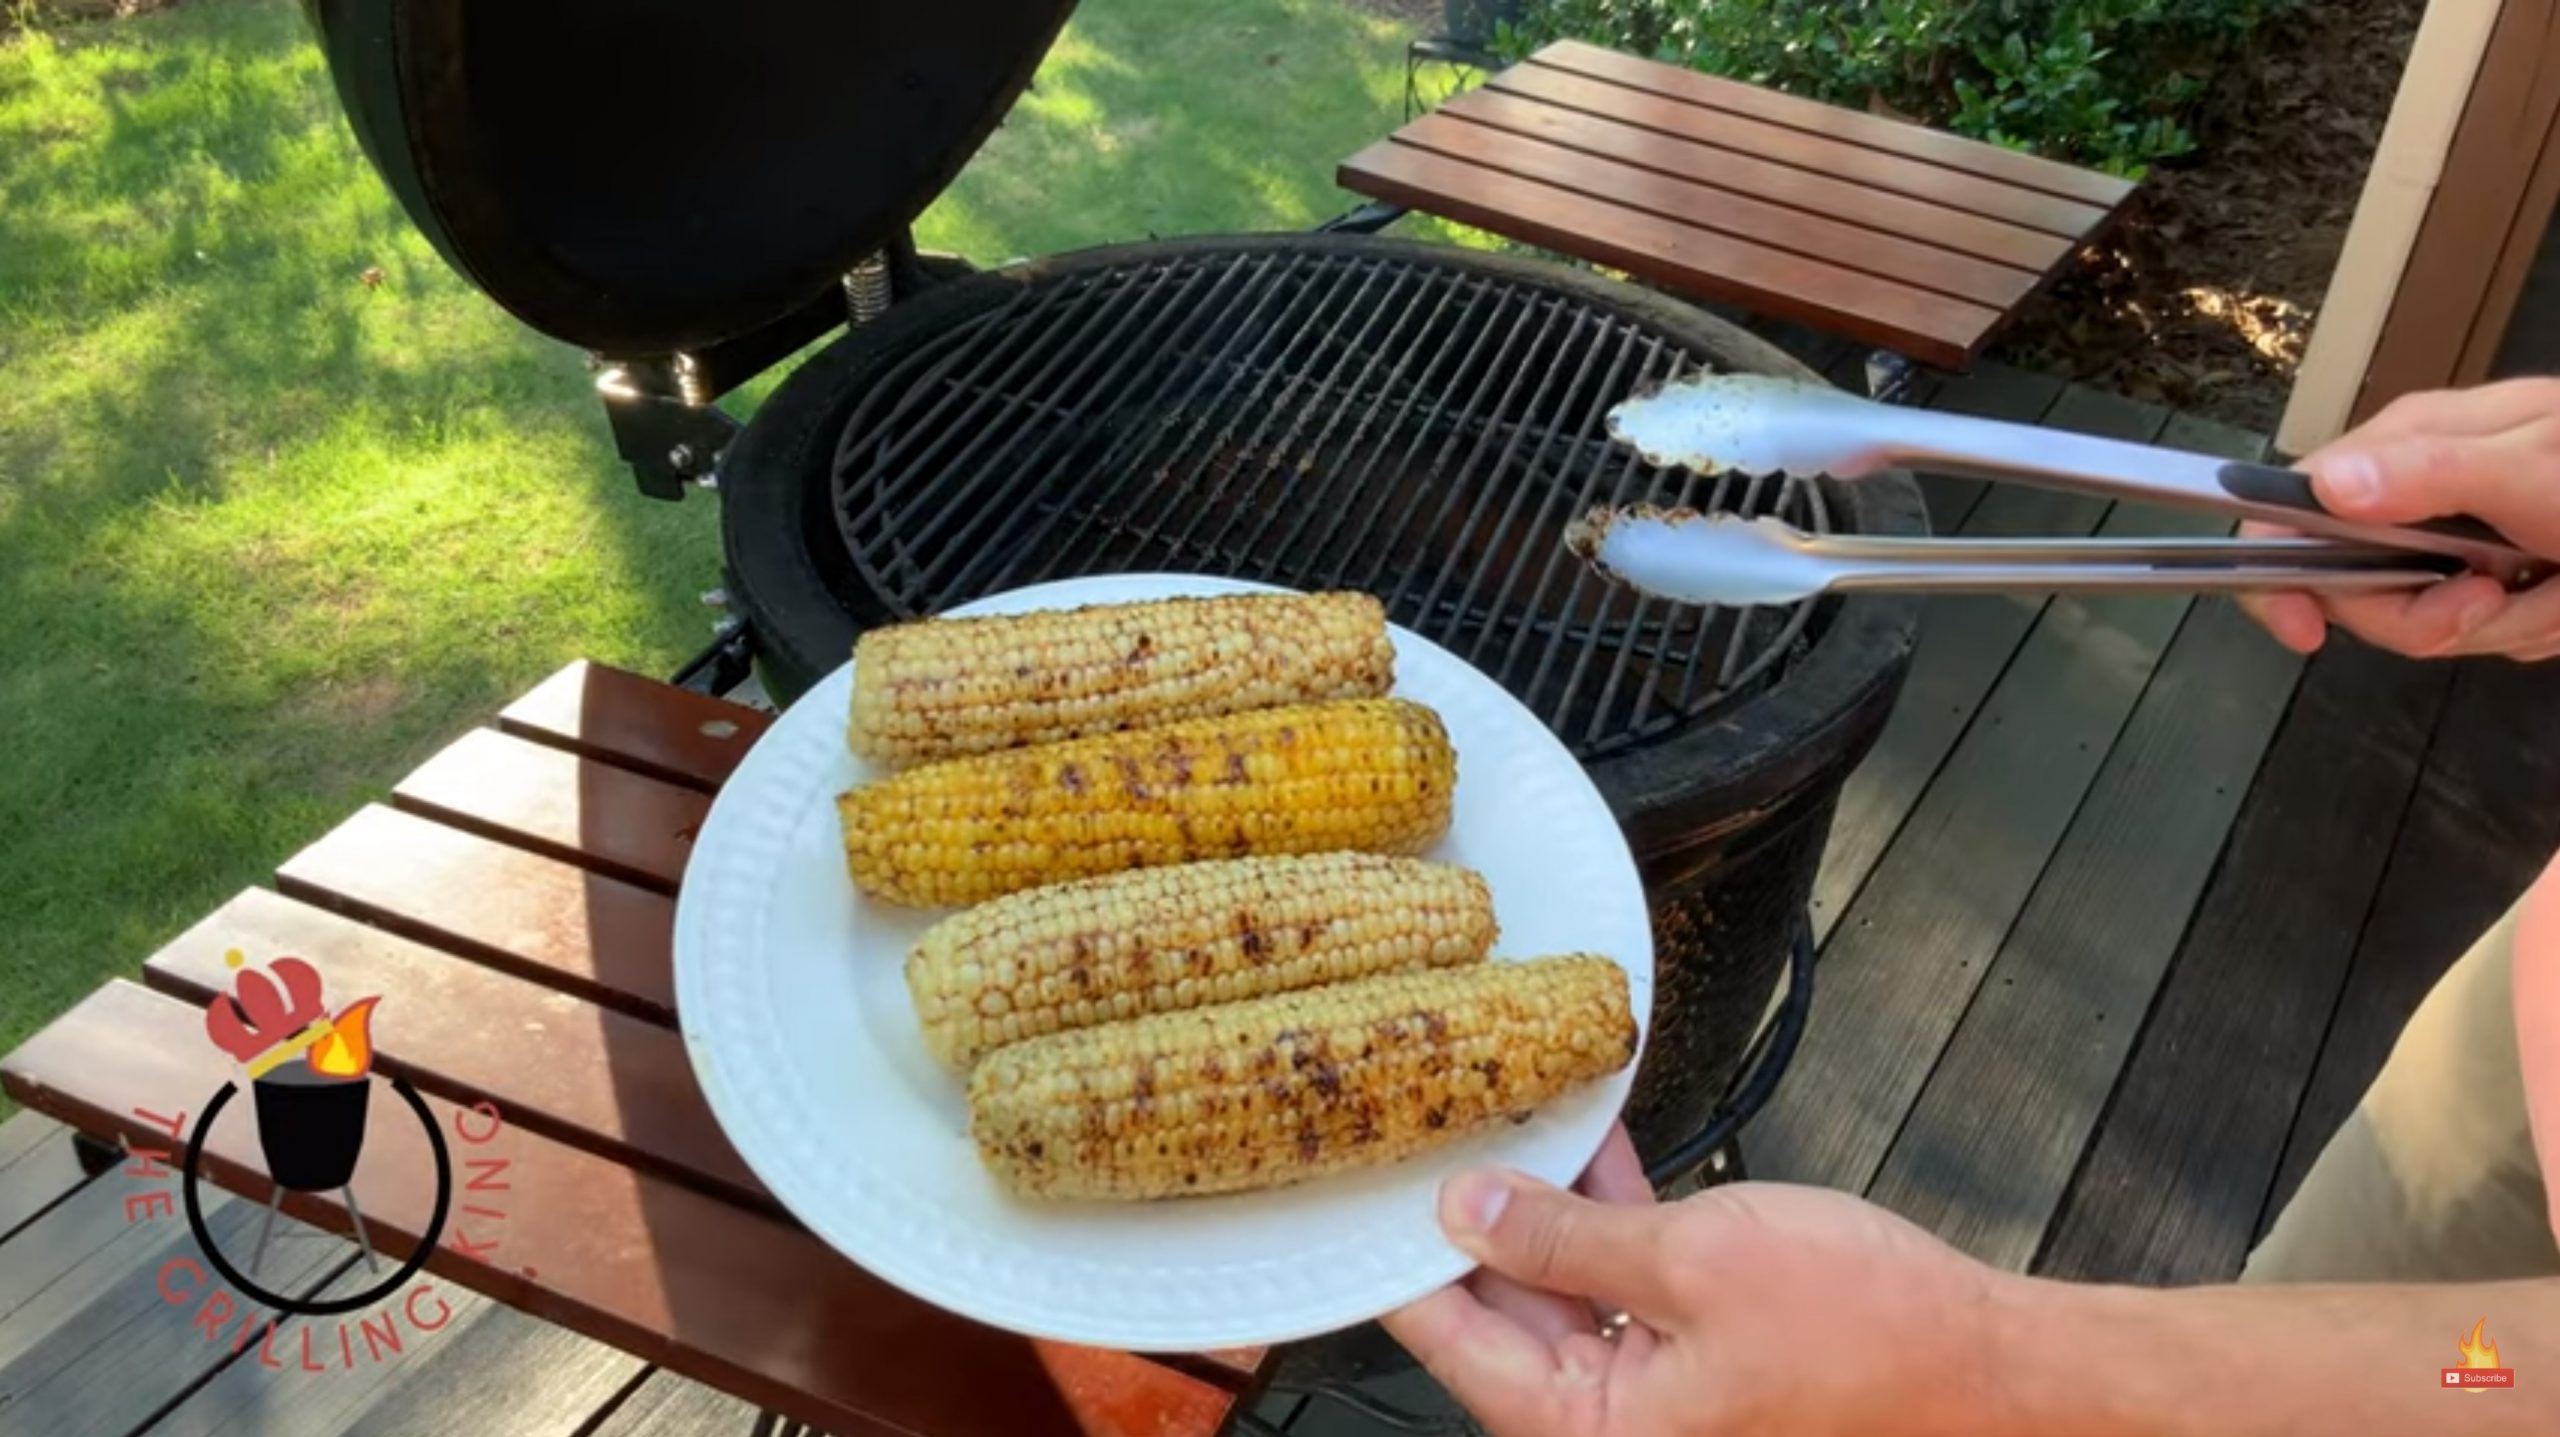 The Grilling King: Kickin' Grilled Corn